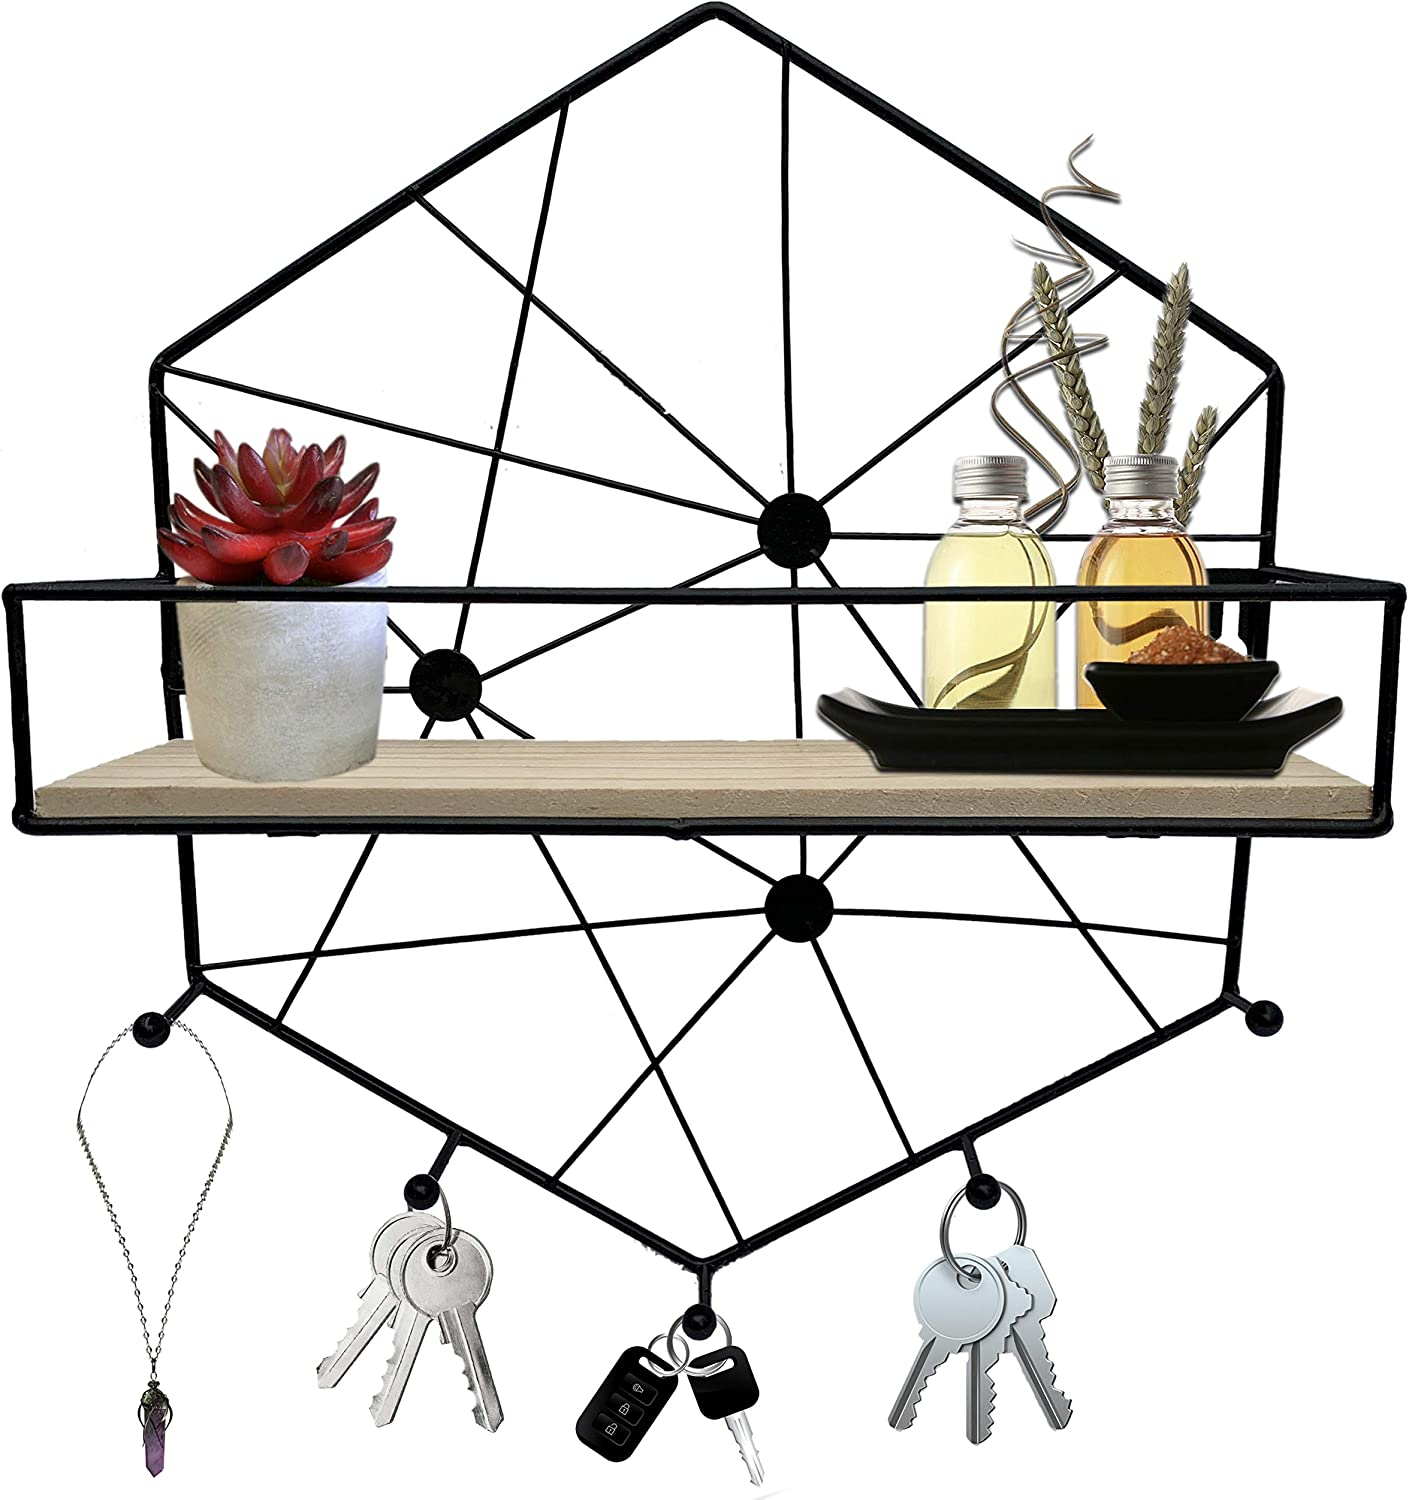 Hexagon Shelf Creating Aesthetic Room Décor, Key Holder for Wall with Shelf Or Necklace Holder Wall Mount, This Black Floating Shelf is Perfect Teen Room Decor Aesthetic Pleasure Honeycomb Shelves